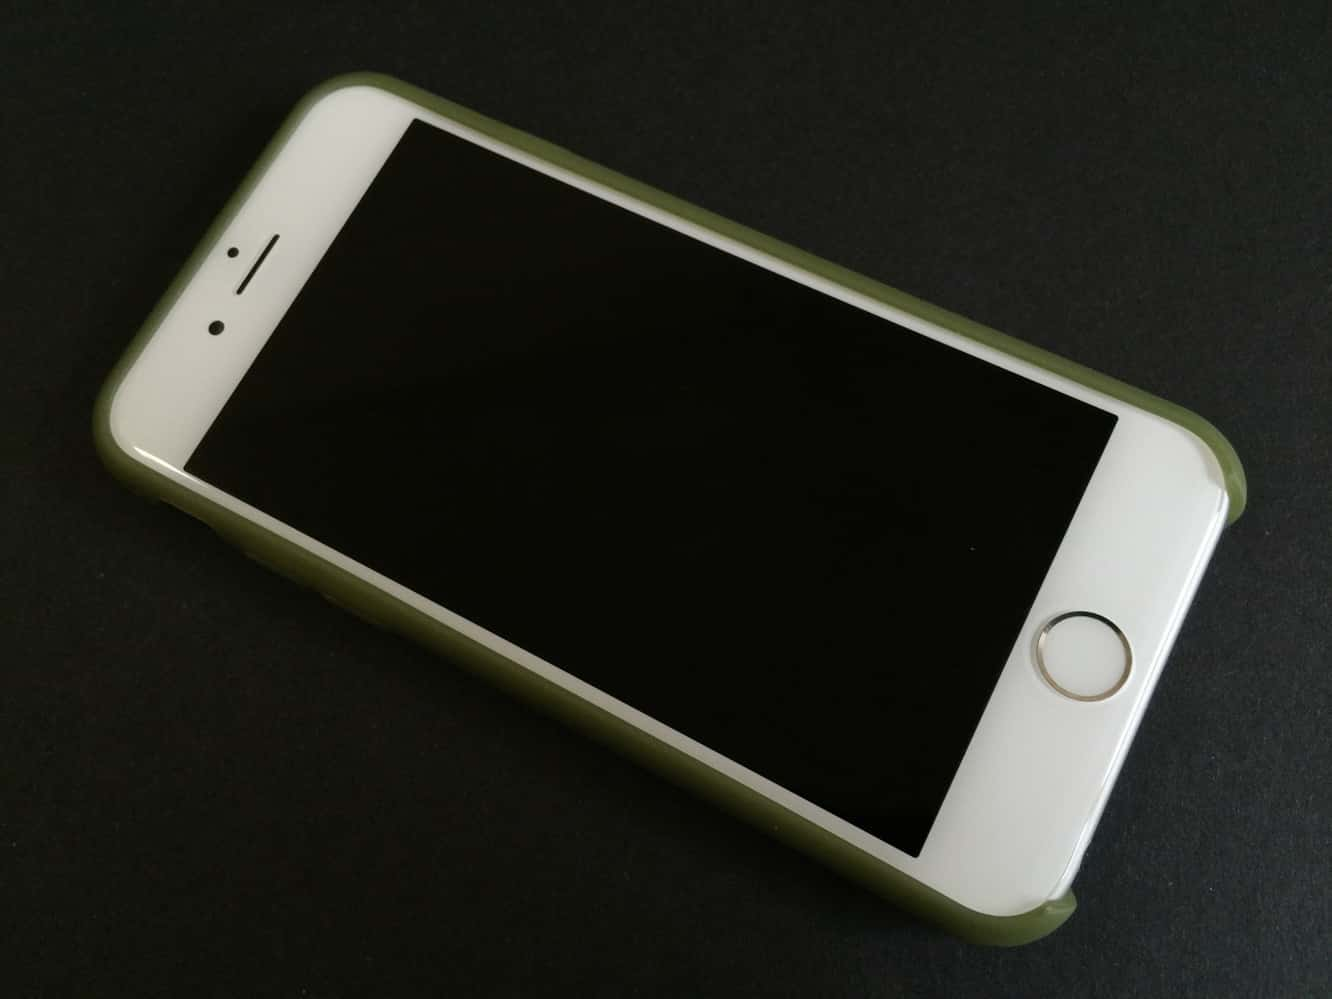 Review: Native Union Clic 360 for iPhone 6